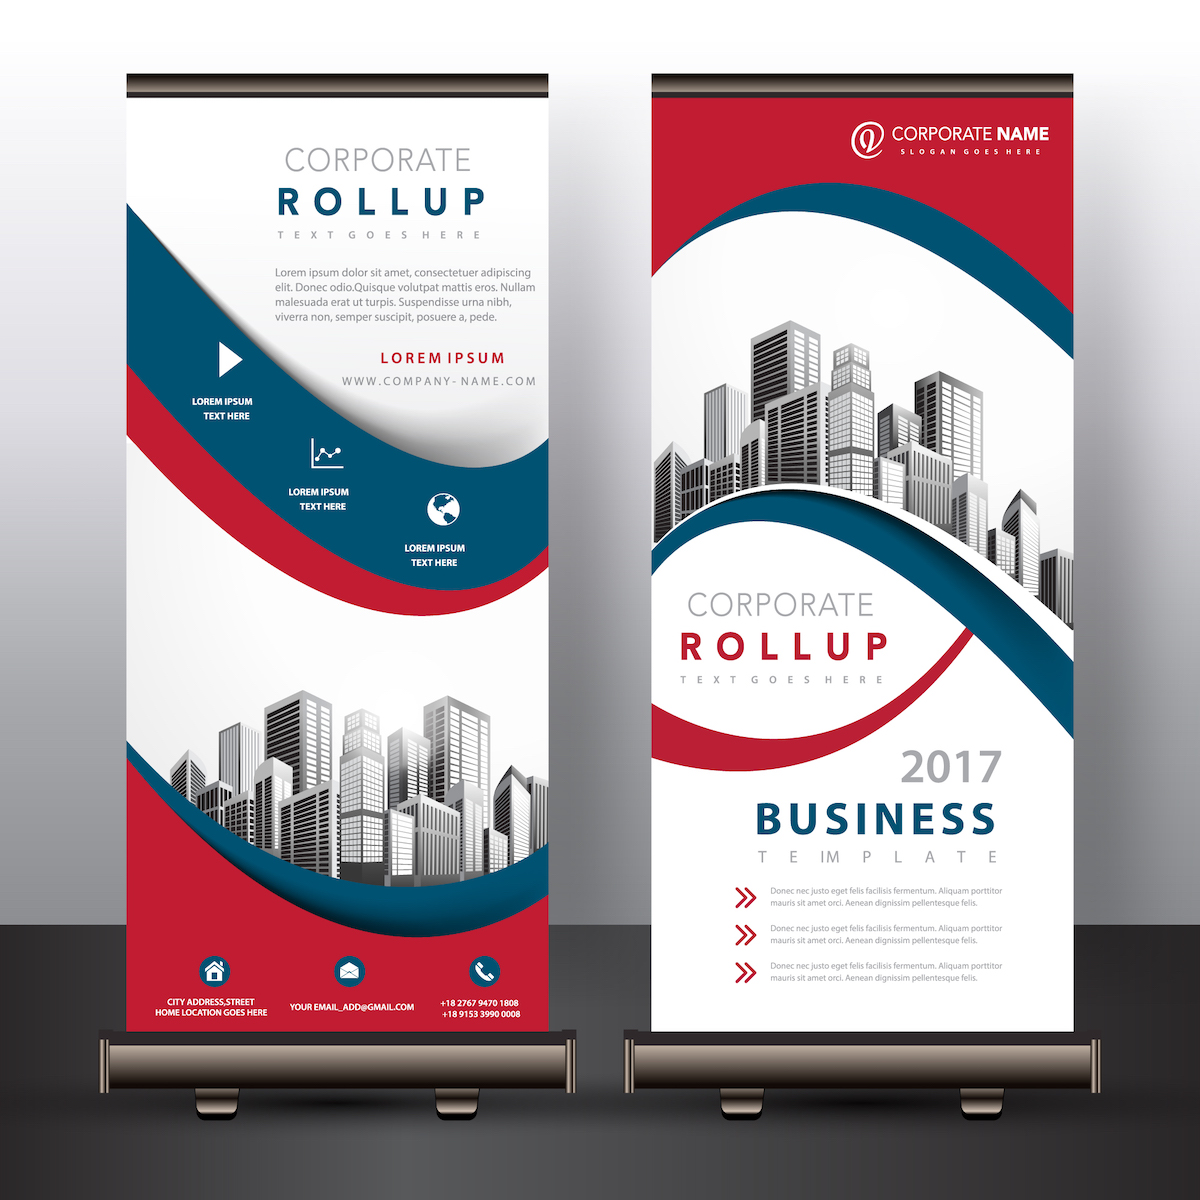 Roll-up support de PLV